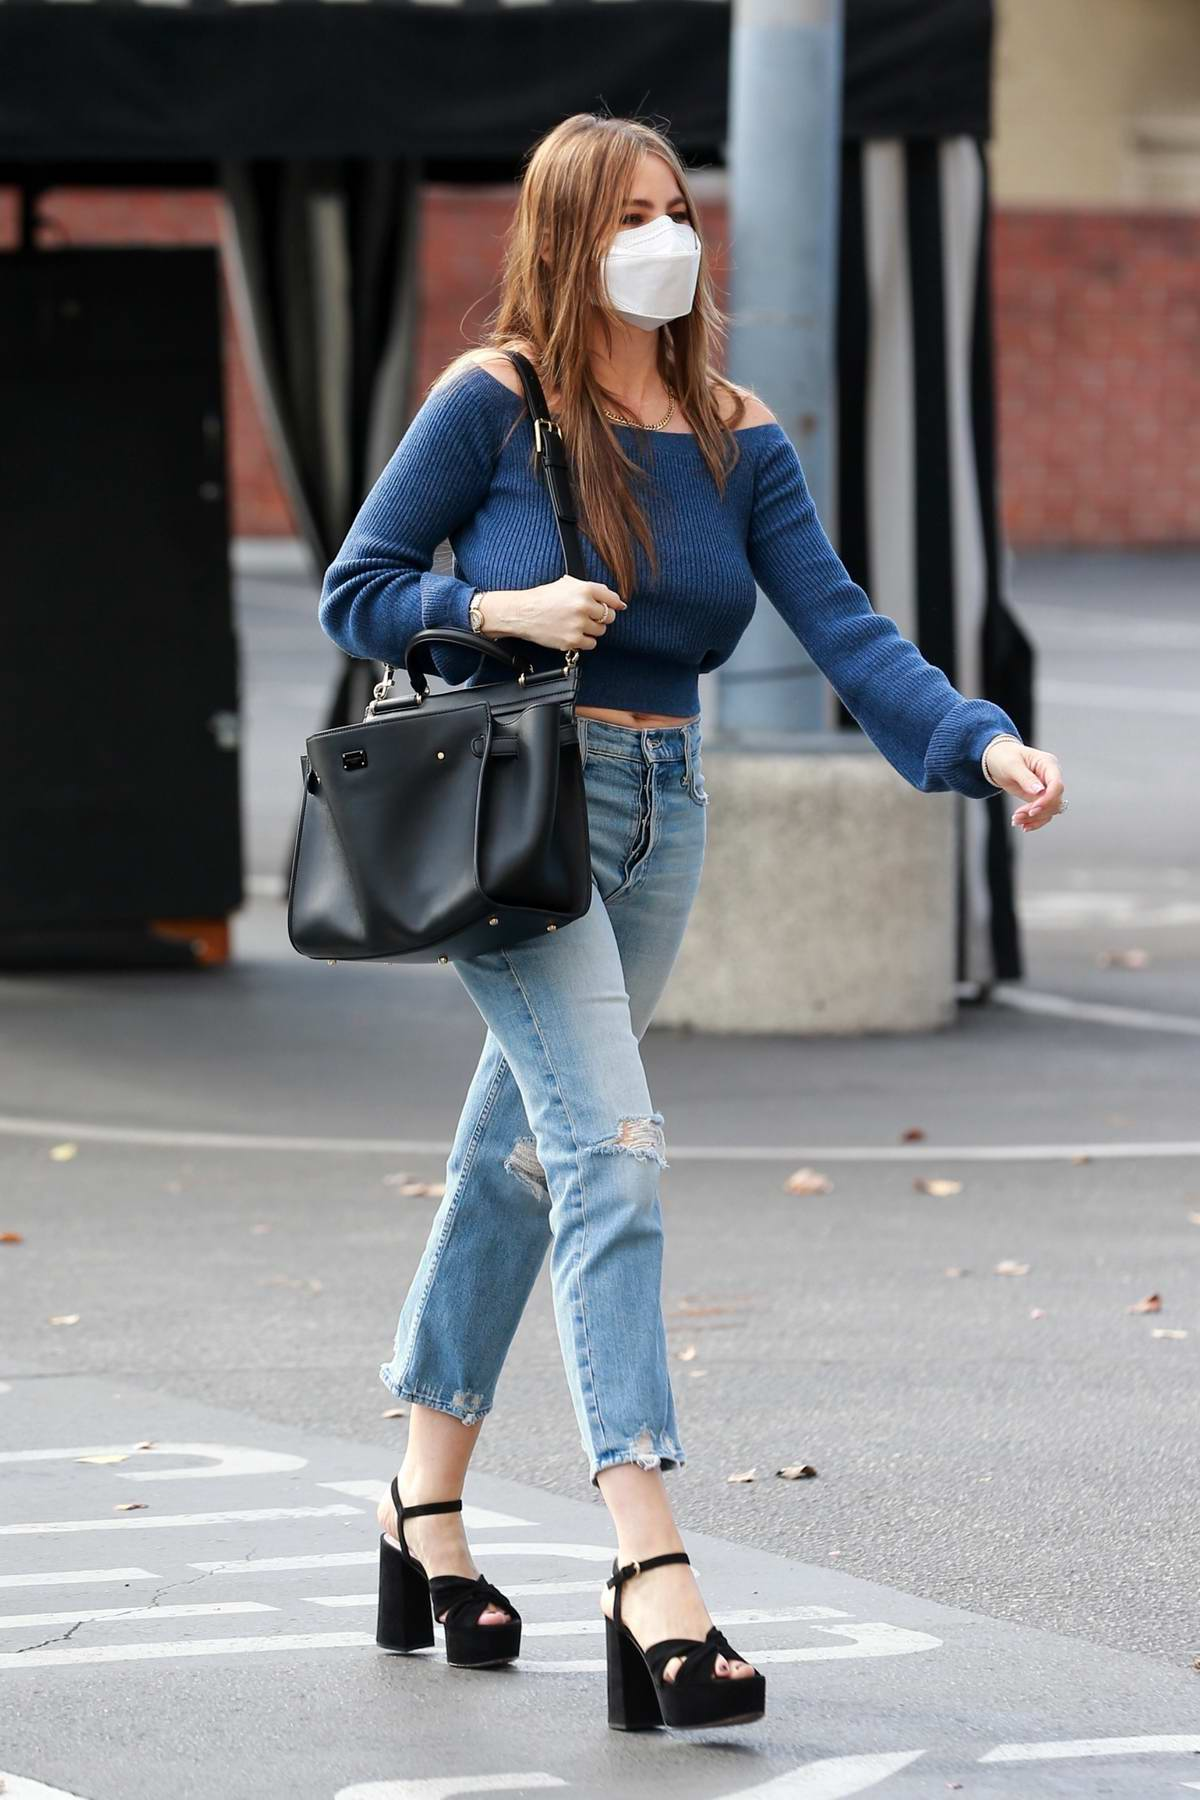 Sofia Vergara gets some Christmas shopping done at Saks Fifth Avenue in Beverly Hills, California